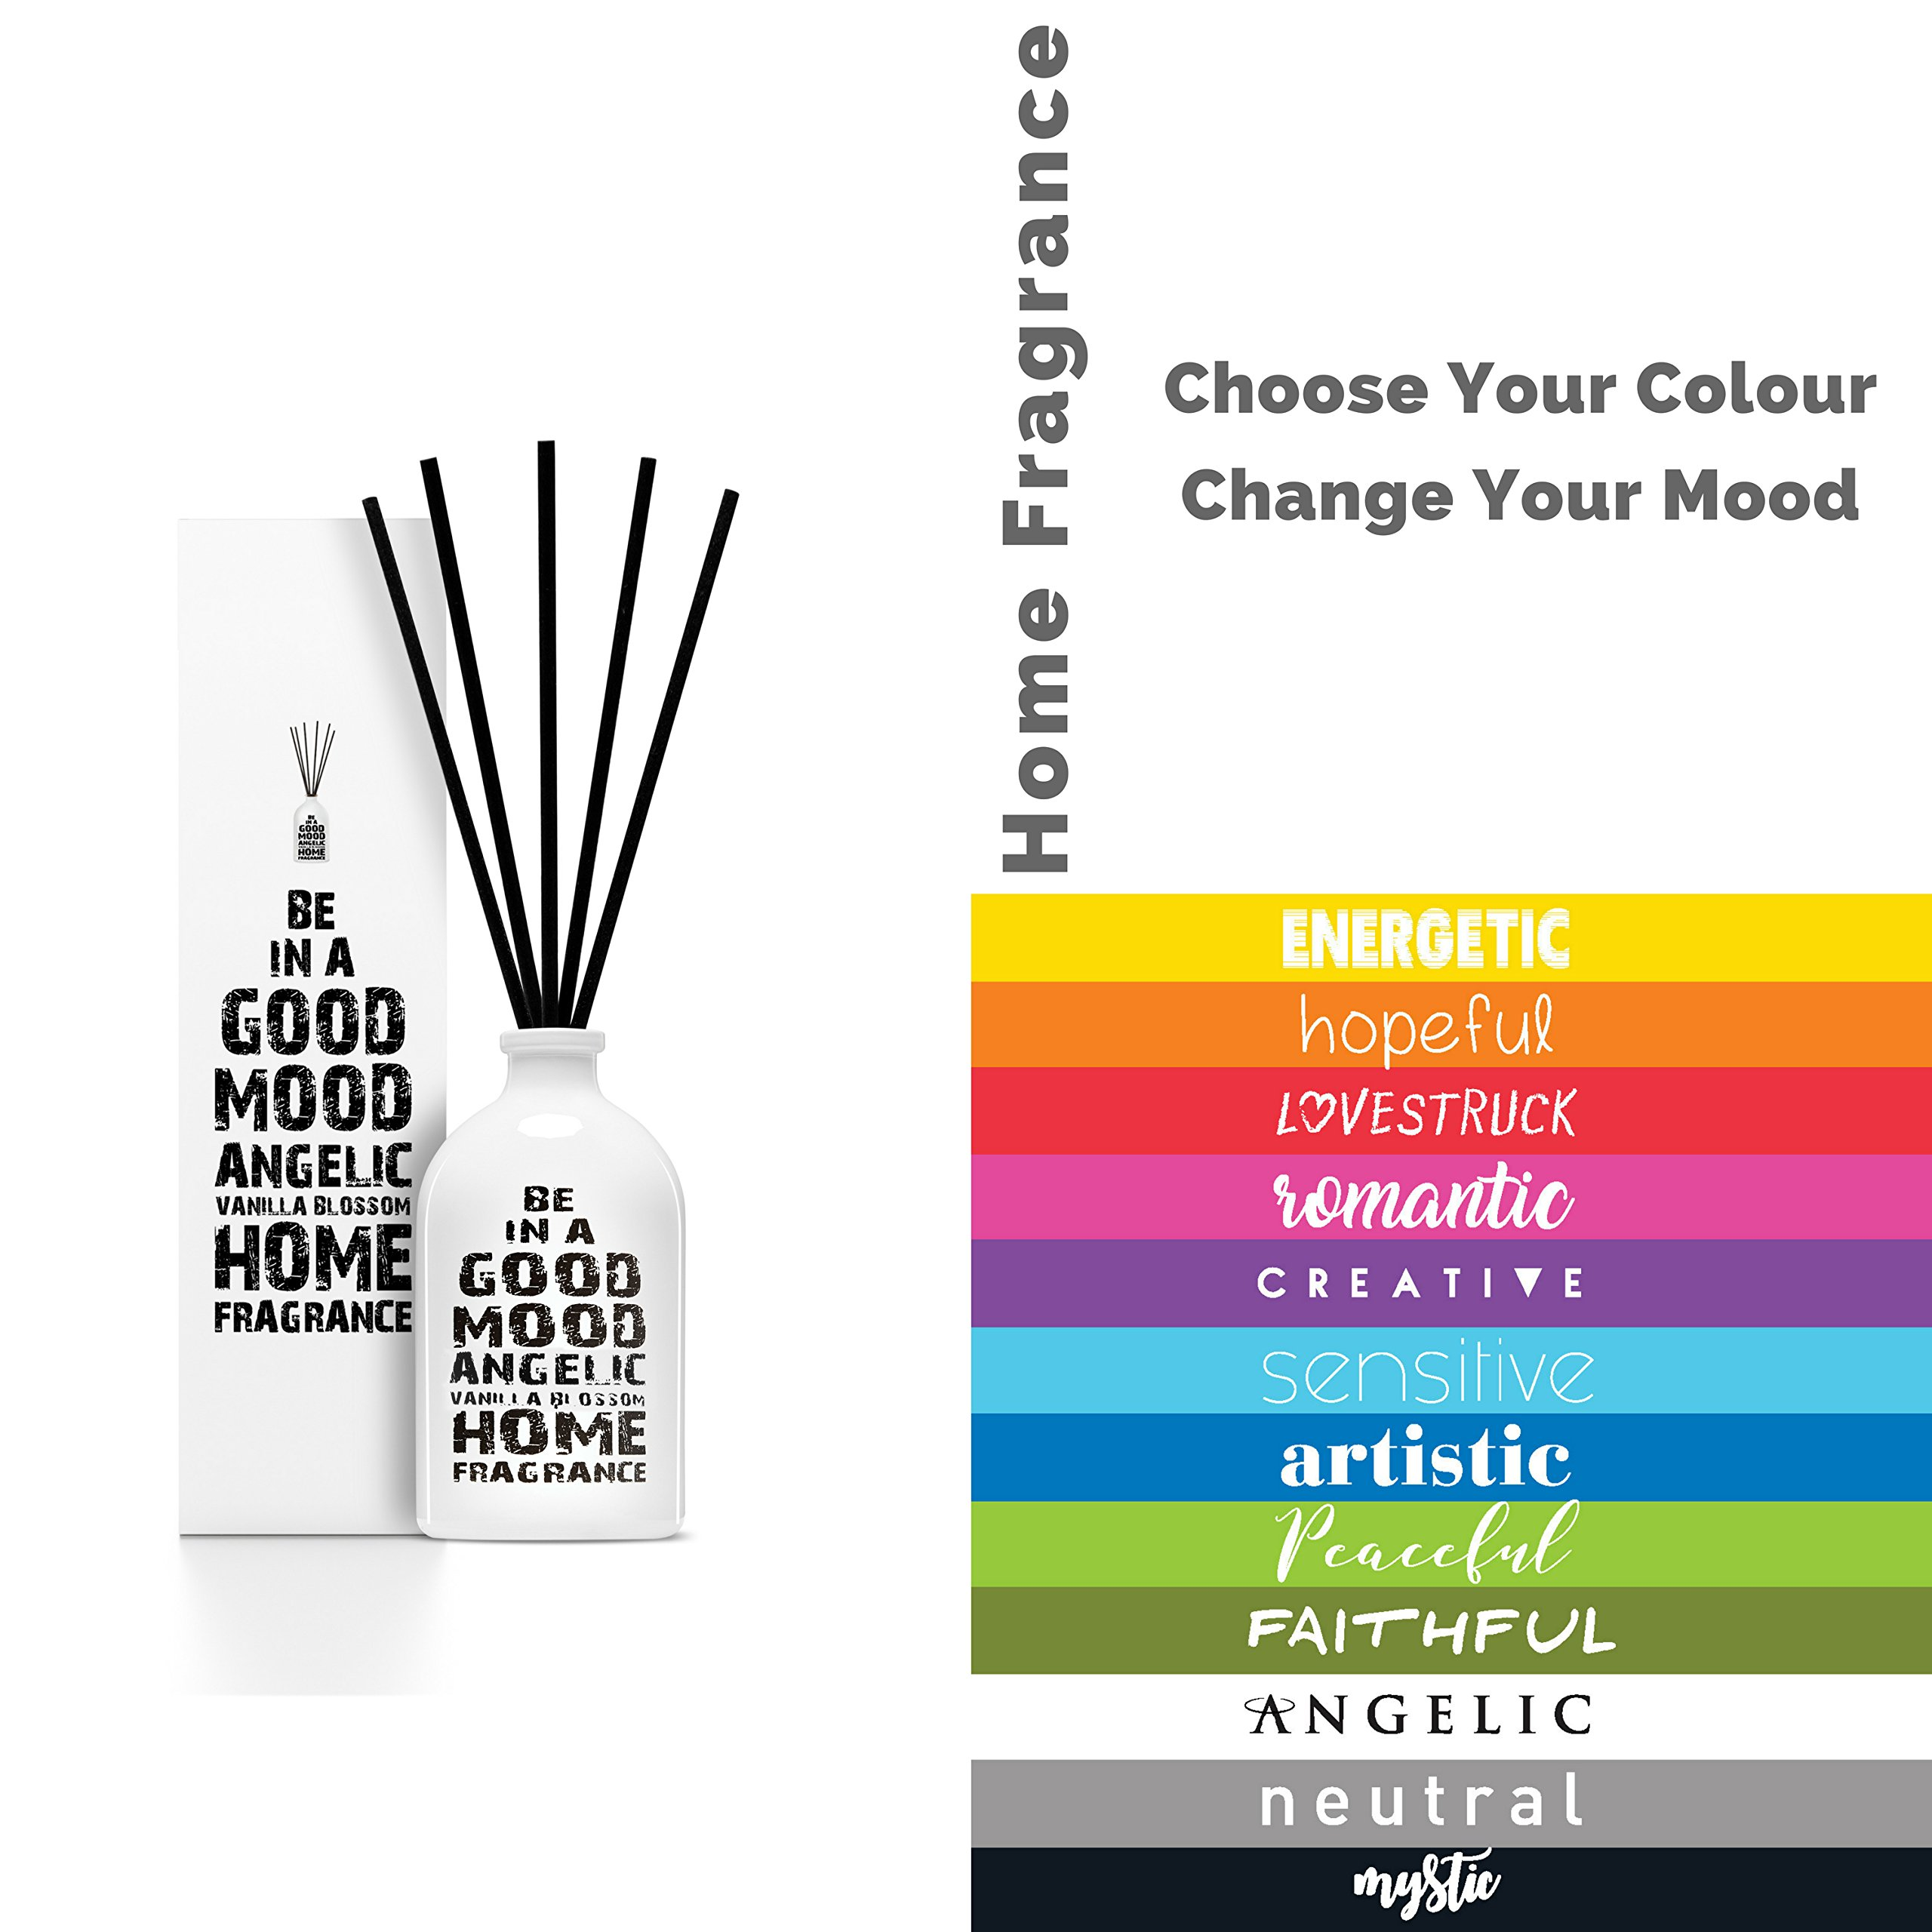 Be in a Good Mood Aromatherapy Diffuser Sticks | Reed Diffuser Set | Aromatic Home Fragrance Set | Essential Oil Diffuser Sticks, Made of Natural Scented Oils Blend - 6 Pack (Vanilla Blossom) by Be in a Good Mood (Image #5)